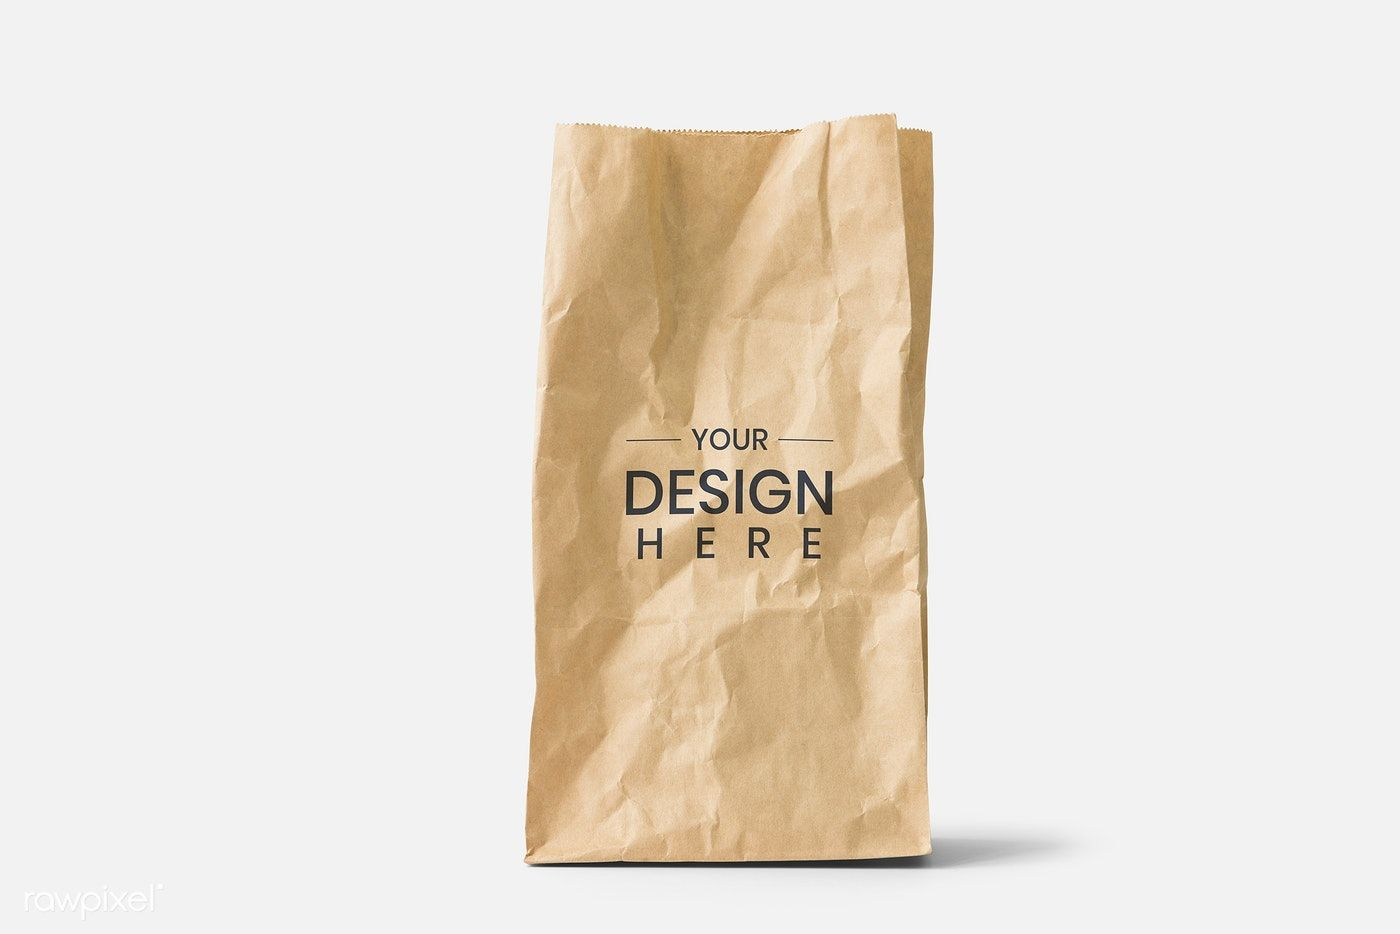 Download Download Premium Psd Of Brown Paper Bag Mockup On A White Background 844062 Paper Bag Bag Mockup Brown Paper Bag